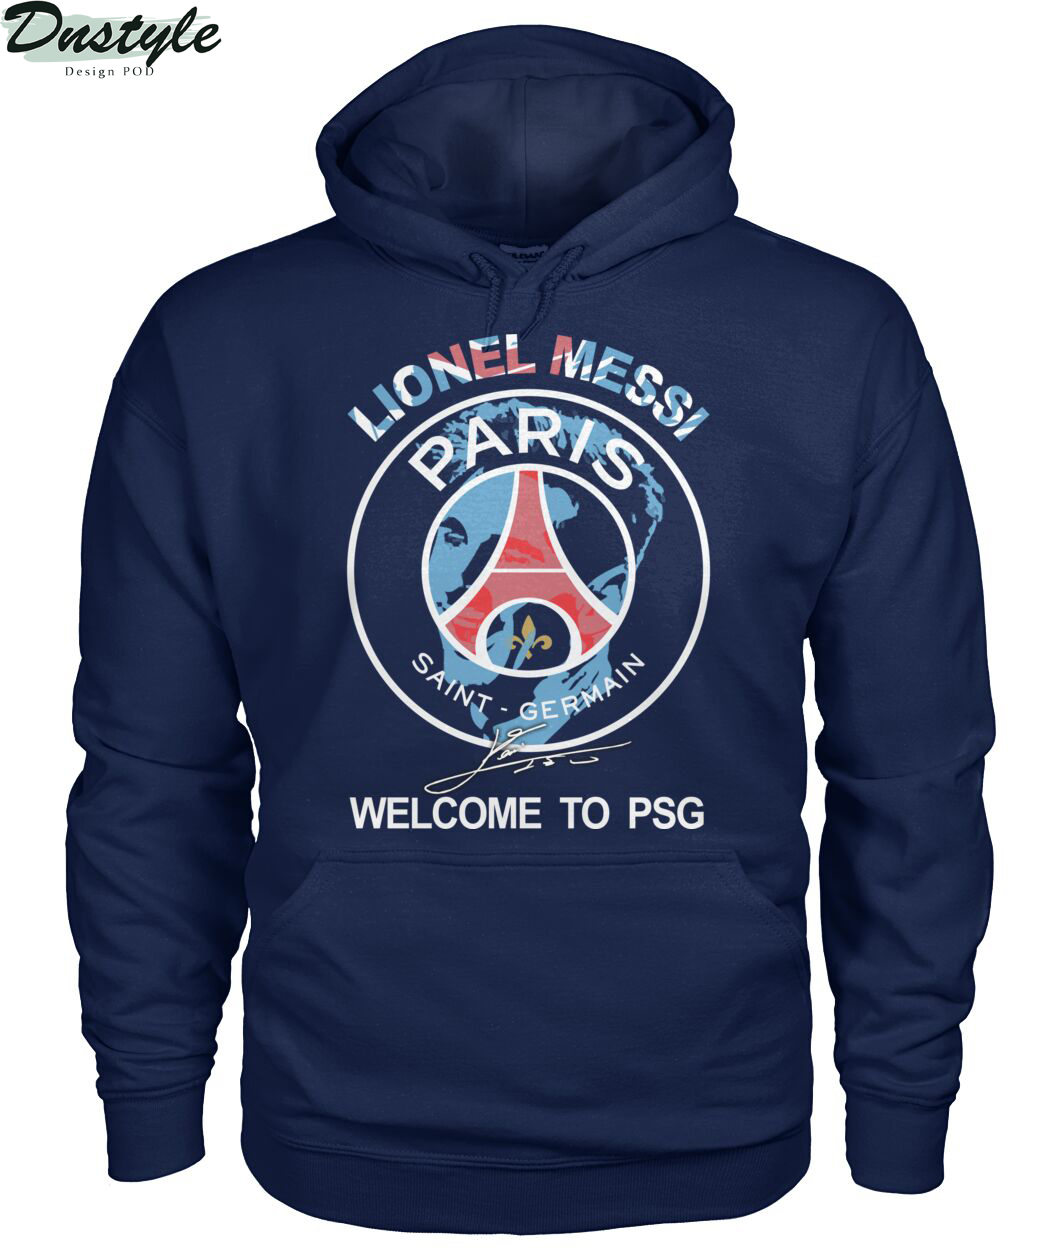 Lionel Messi signature welcome to PSG hoodie